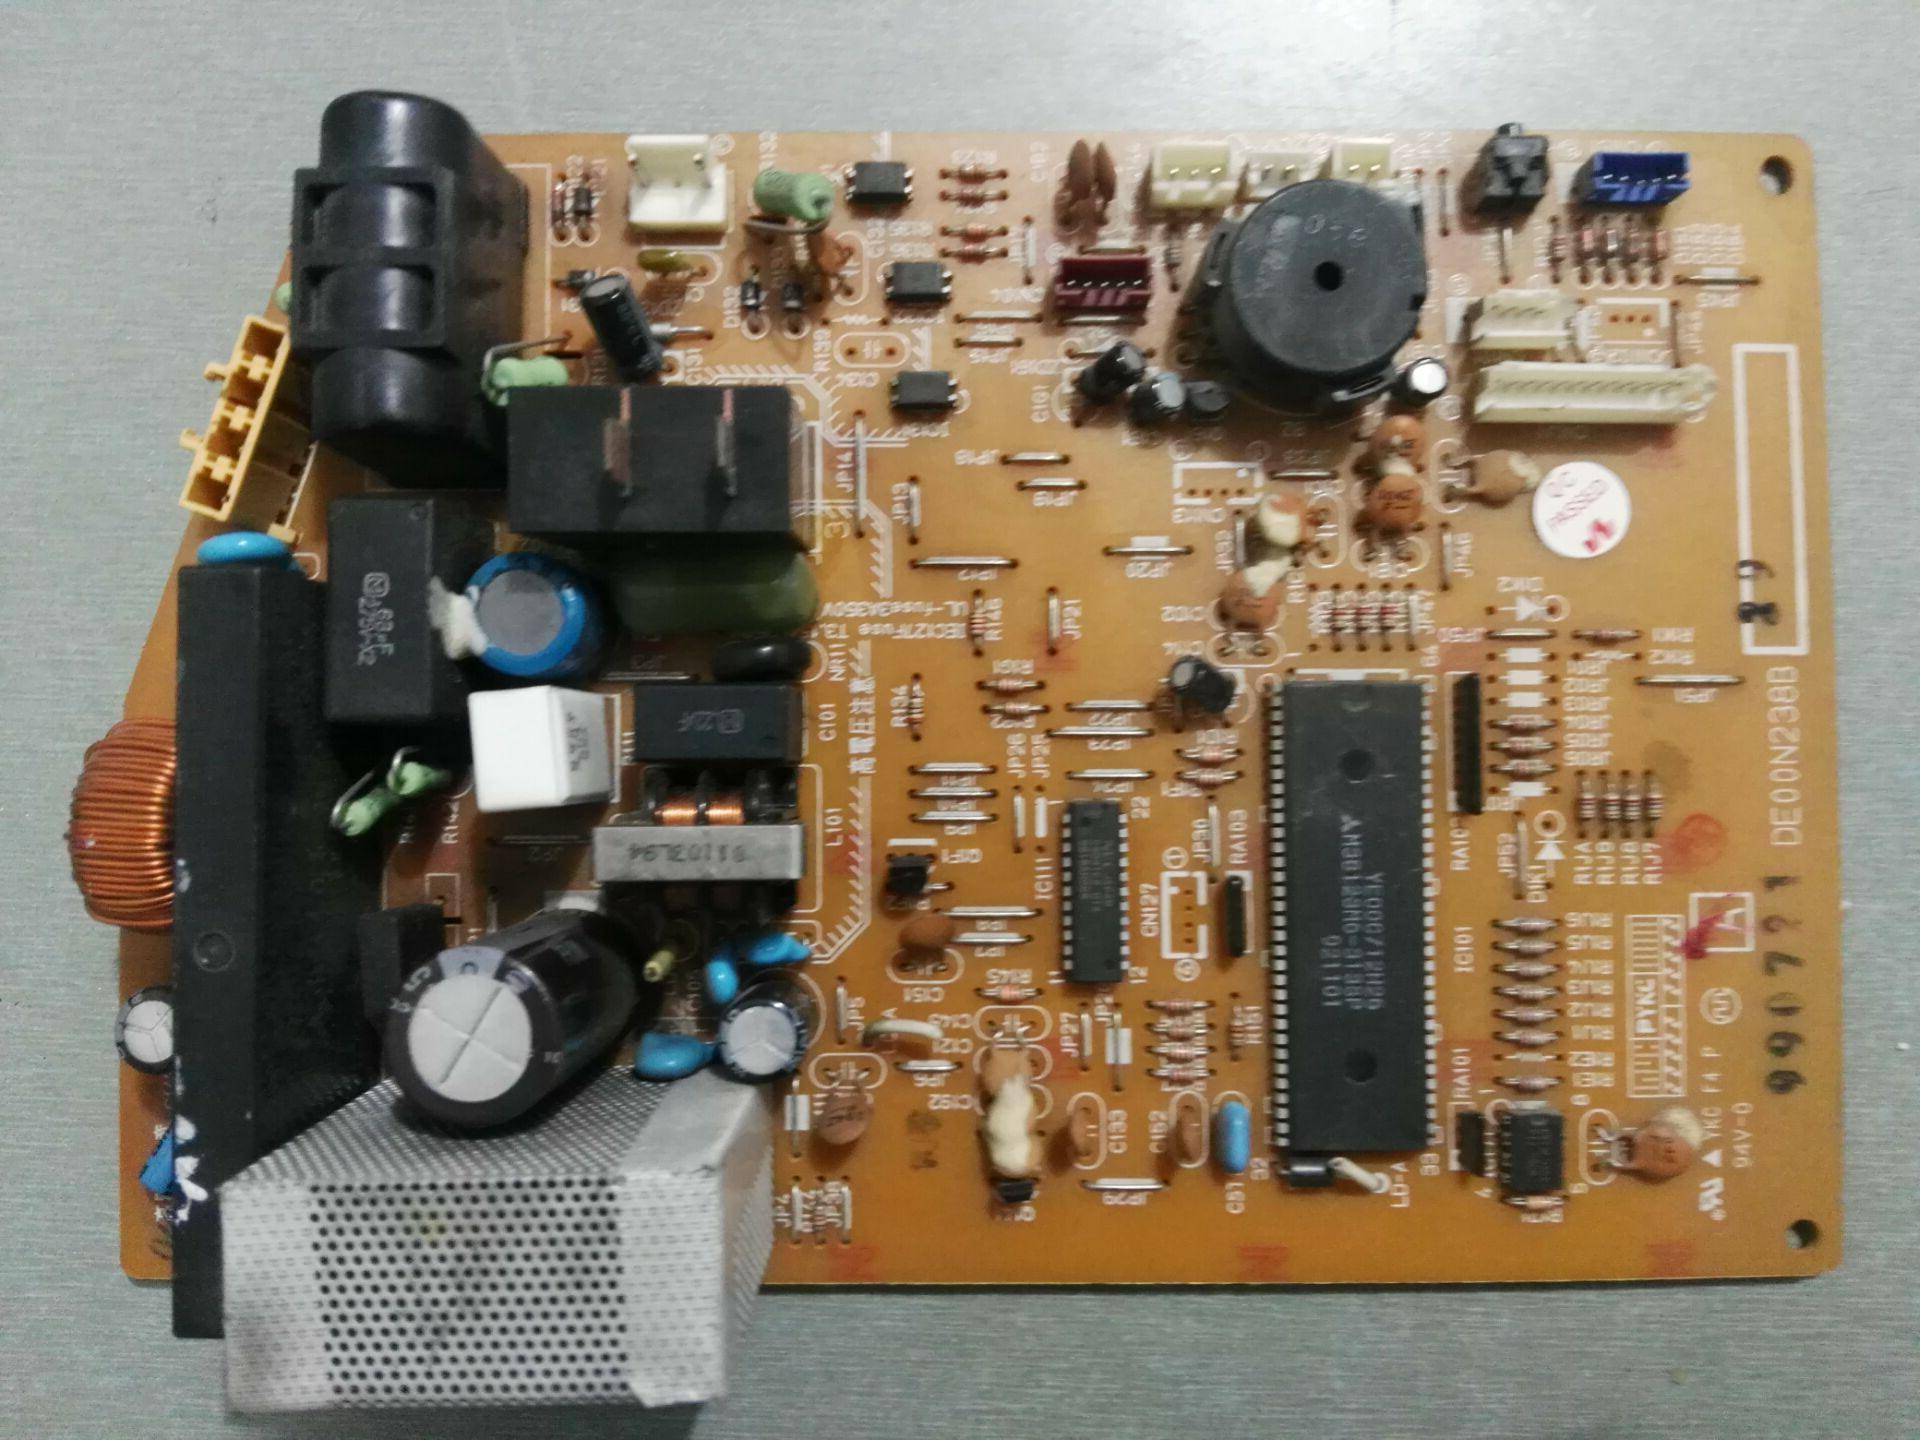 Usd 1688 Mitsubishi Electric Air Conditioning Main Board Computer Ac Circuit Prices Conditioner De00n238b